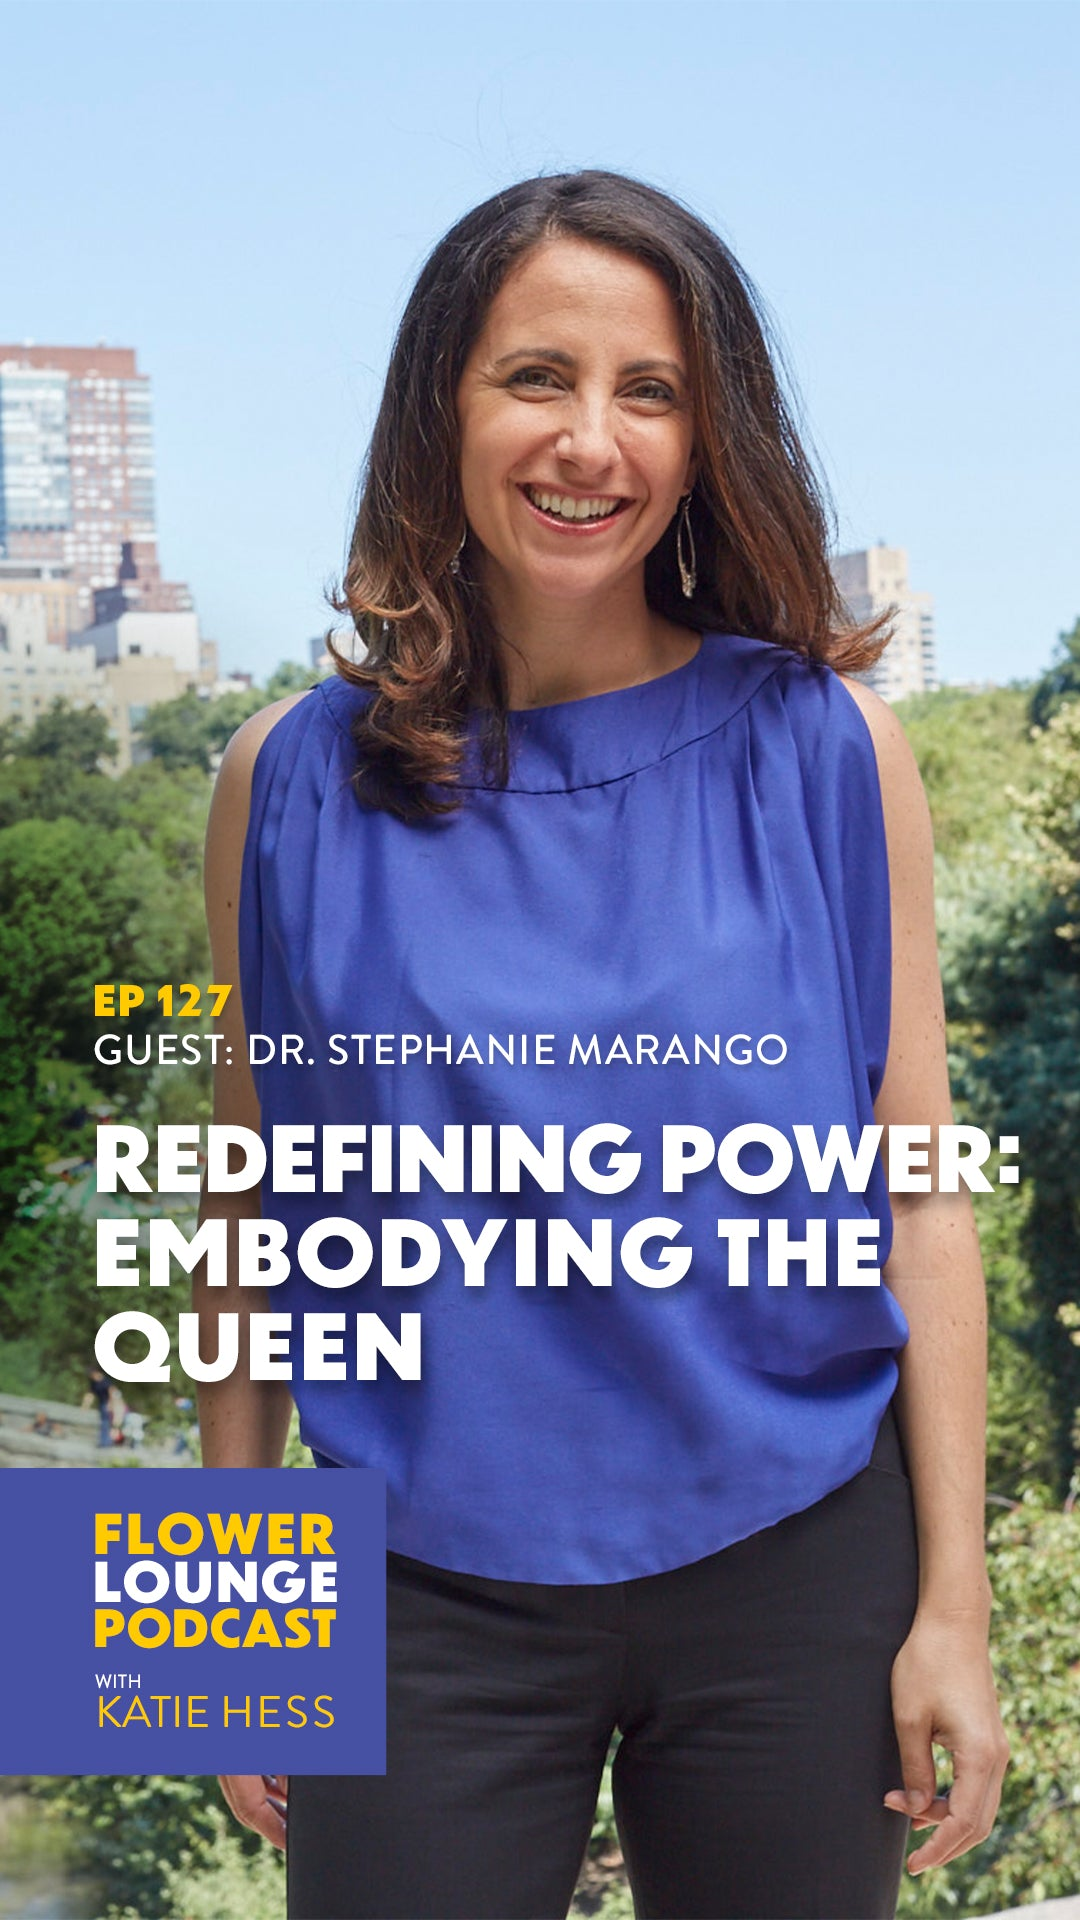 Redefining Power: Embodying the Queen with Dr. Stephanie Marango on the Flowerlounge Podcast with Katie Hess